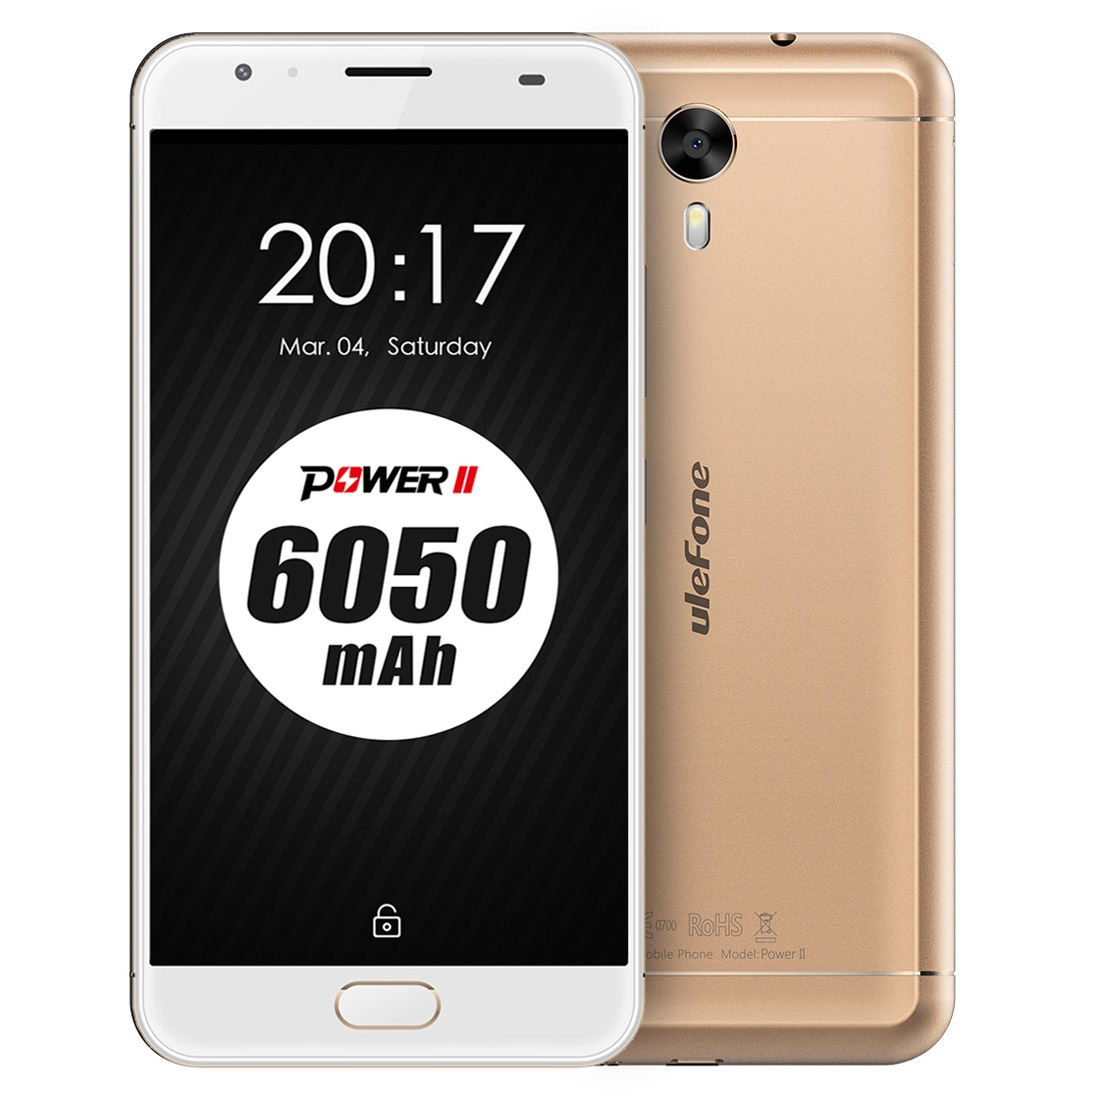 Ulefone Power 2, 4G, Octa-Core CPU, 4GB RAM, 1080p, 6050mAh, 13MP, zlatá